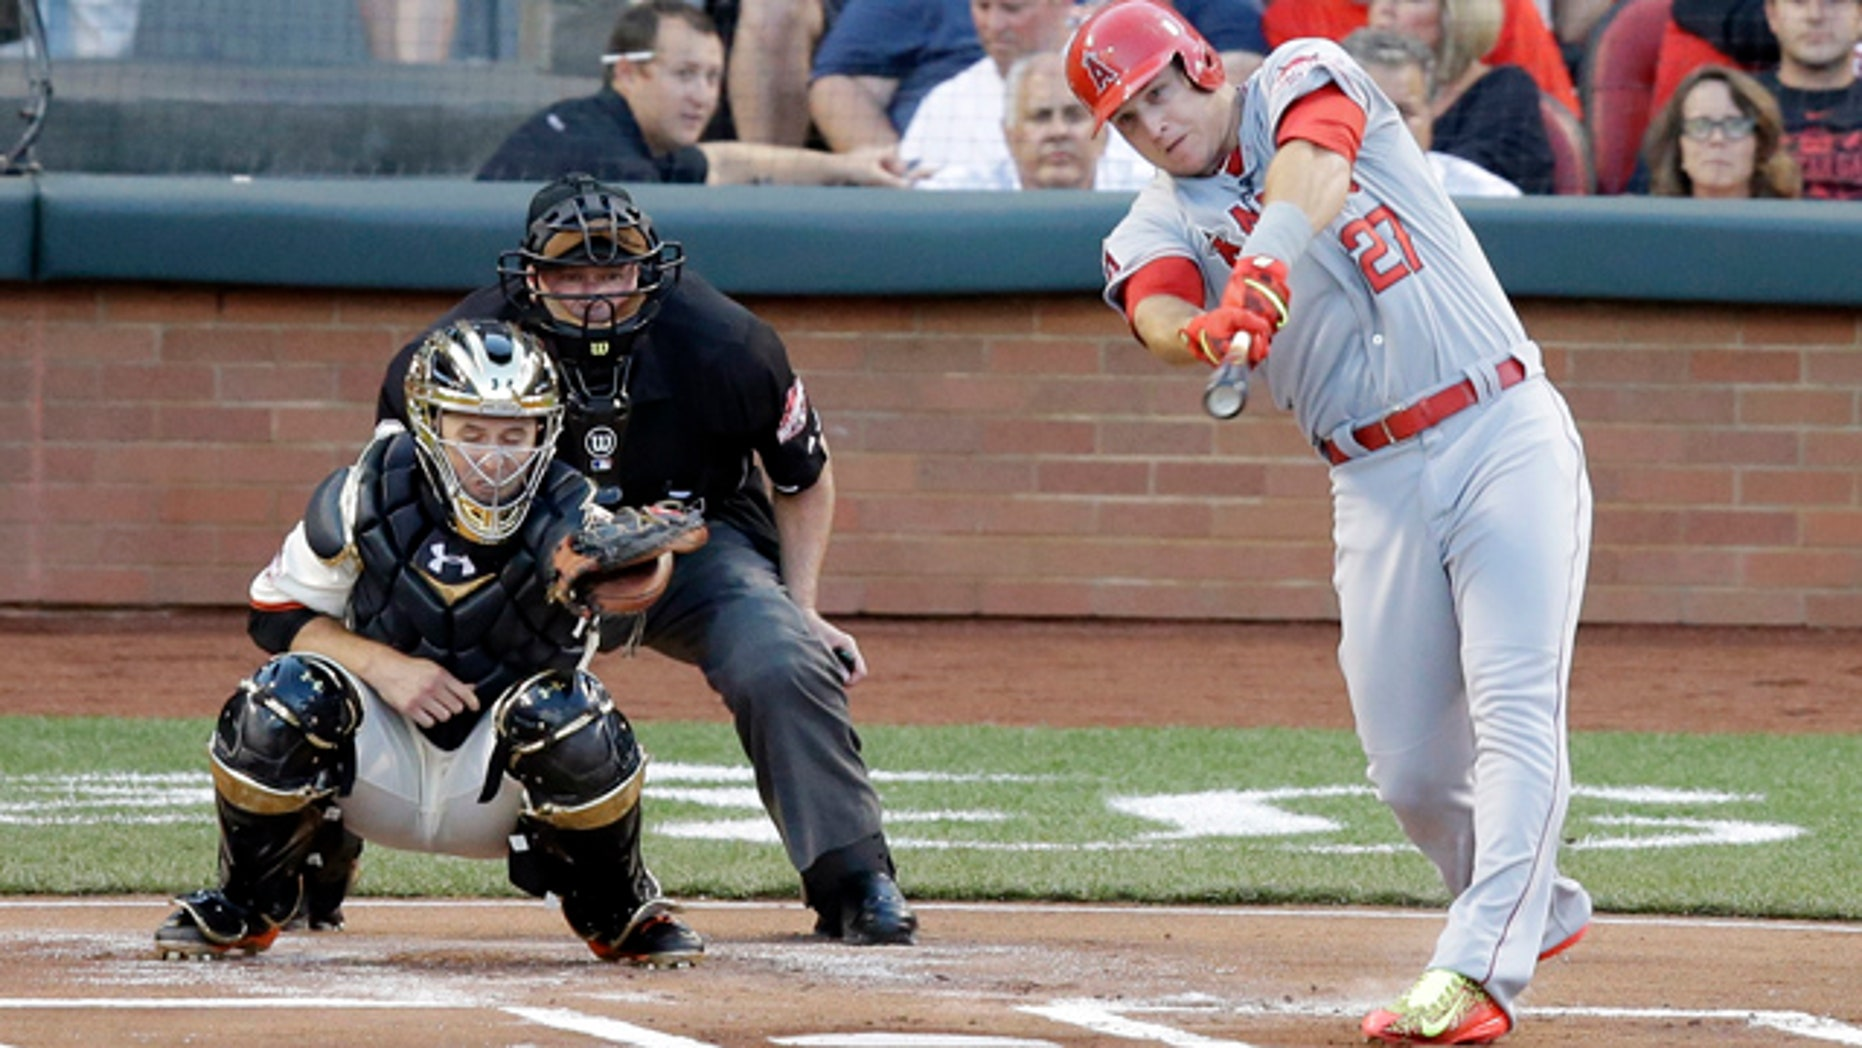 July 14, 2015: Mike Trout of the Los Angeles Angels hits a home run during the first inning of the MLB All-Star baseball game in Cincinnati. (AP Photo/Michael E. Keating )